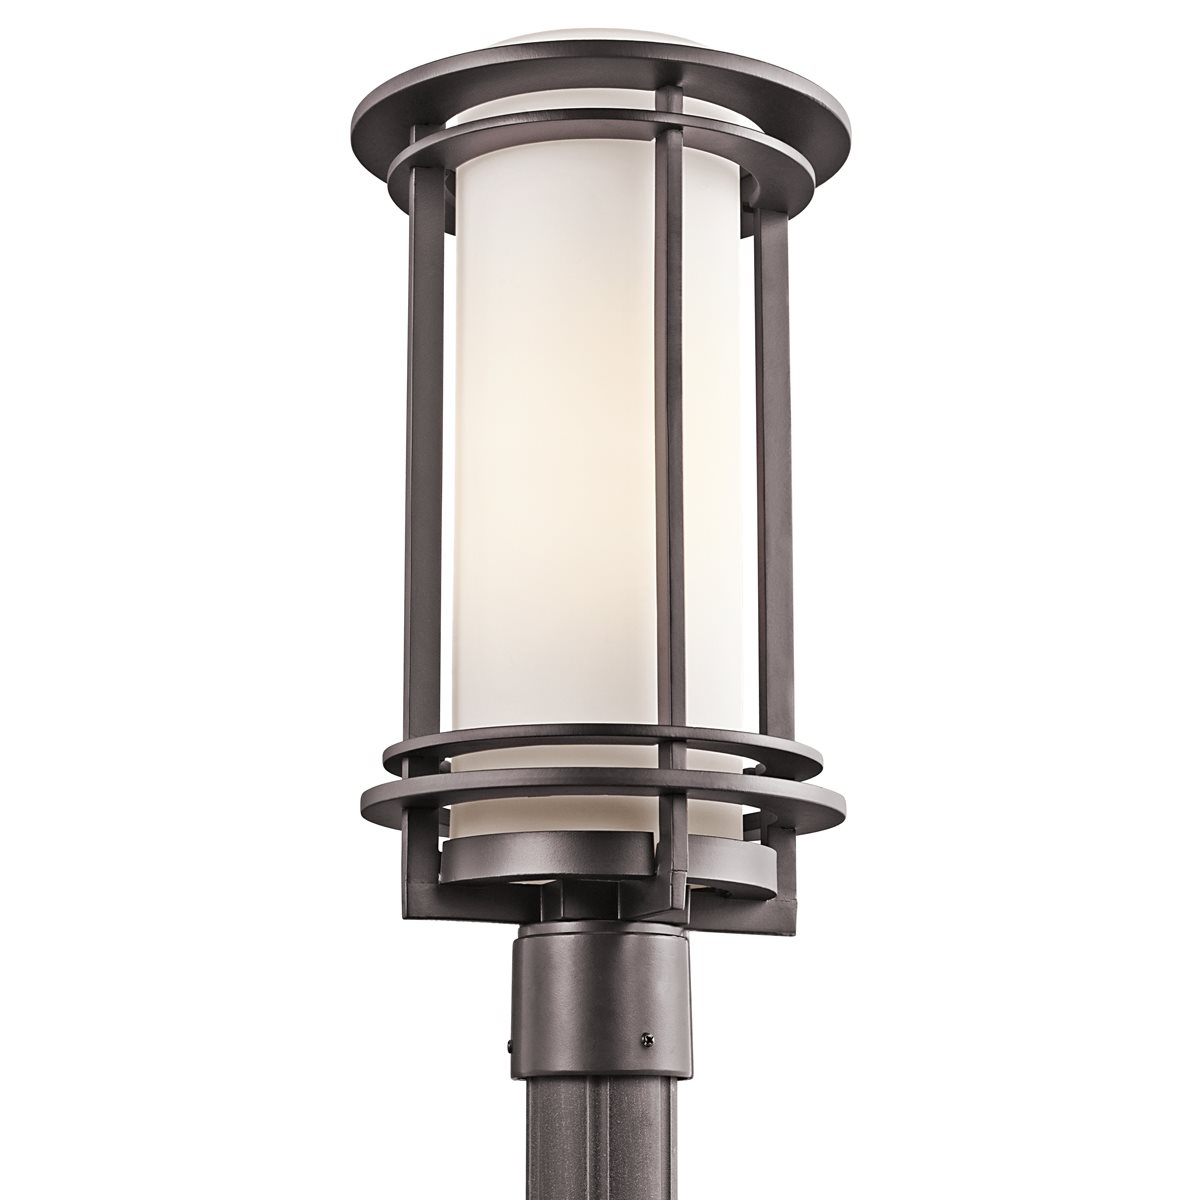 Kichler lighting 49349az pacific edge modern for Modern exterior lighting fixtures